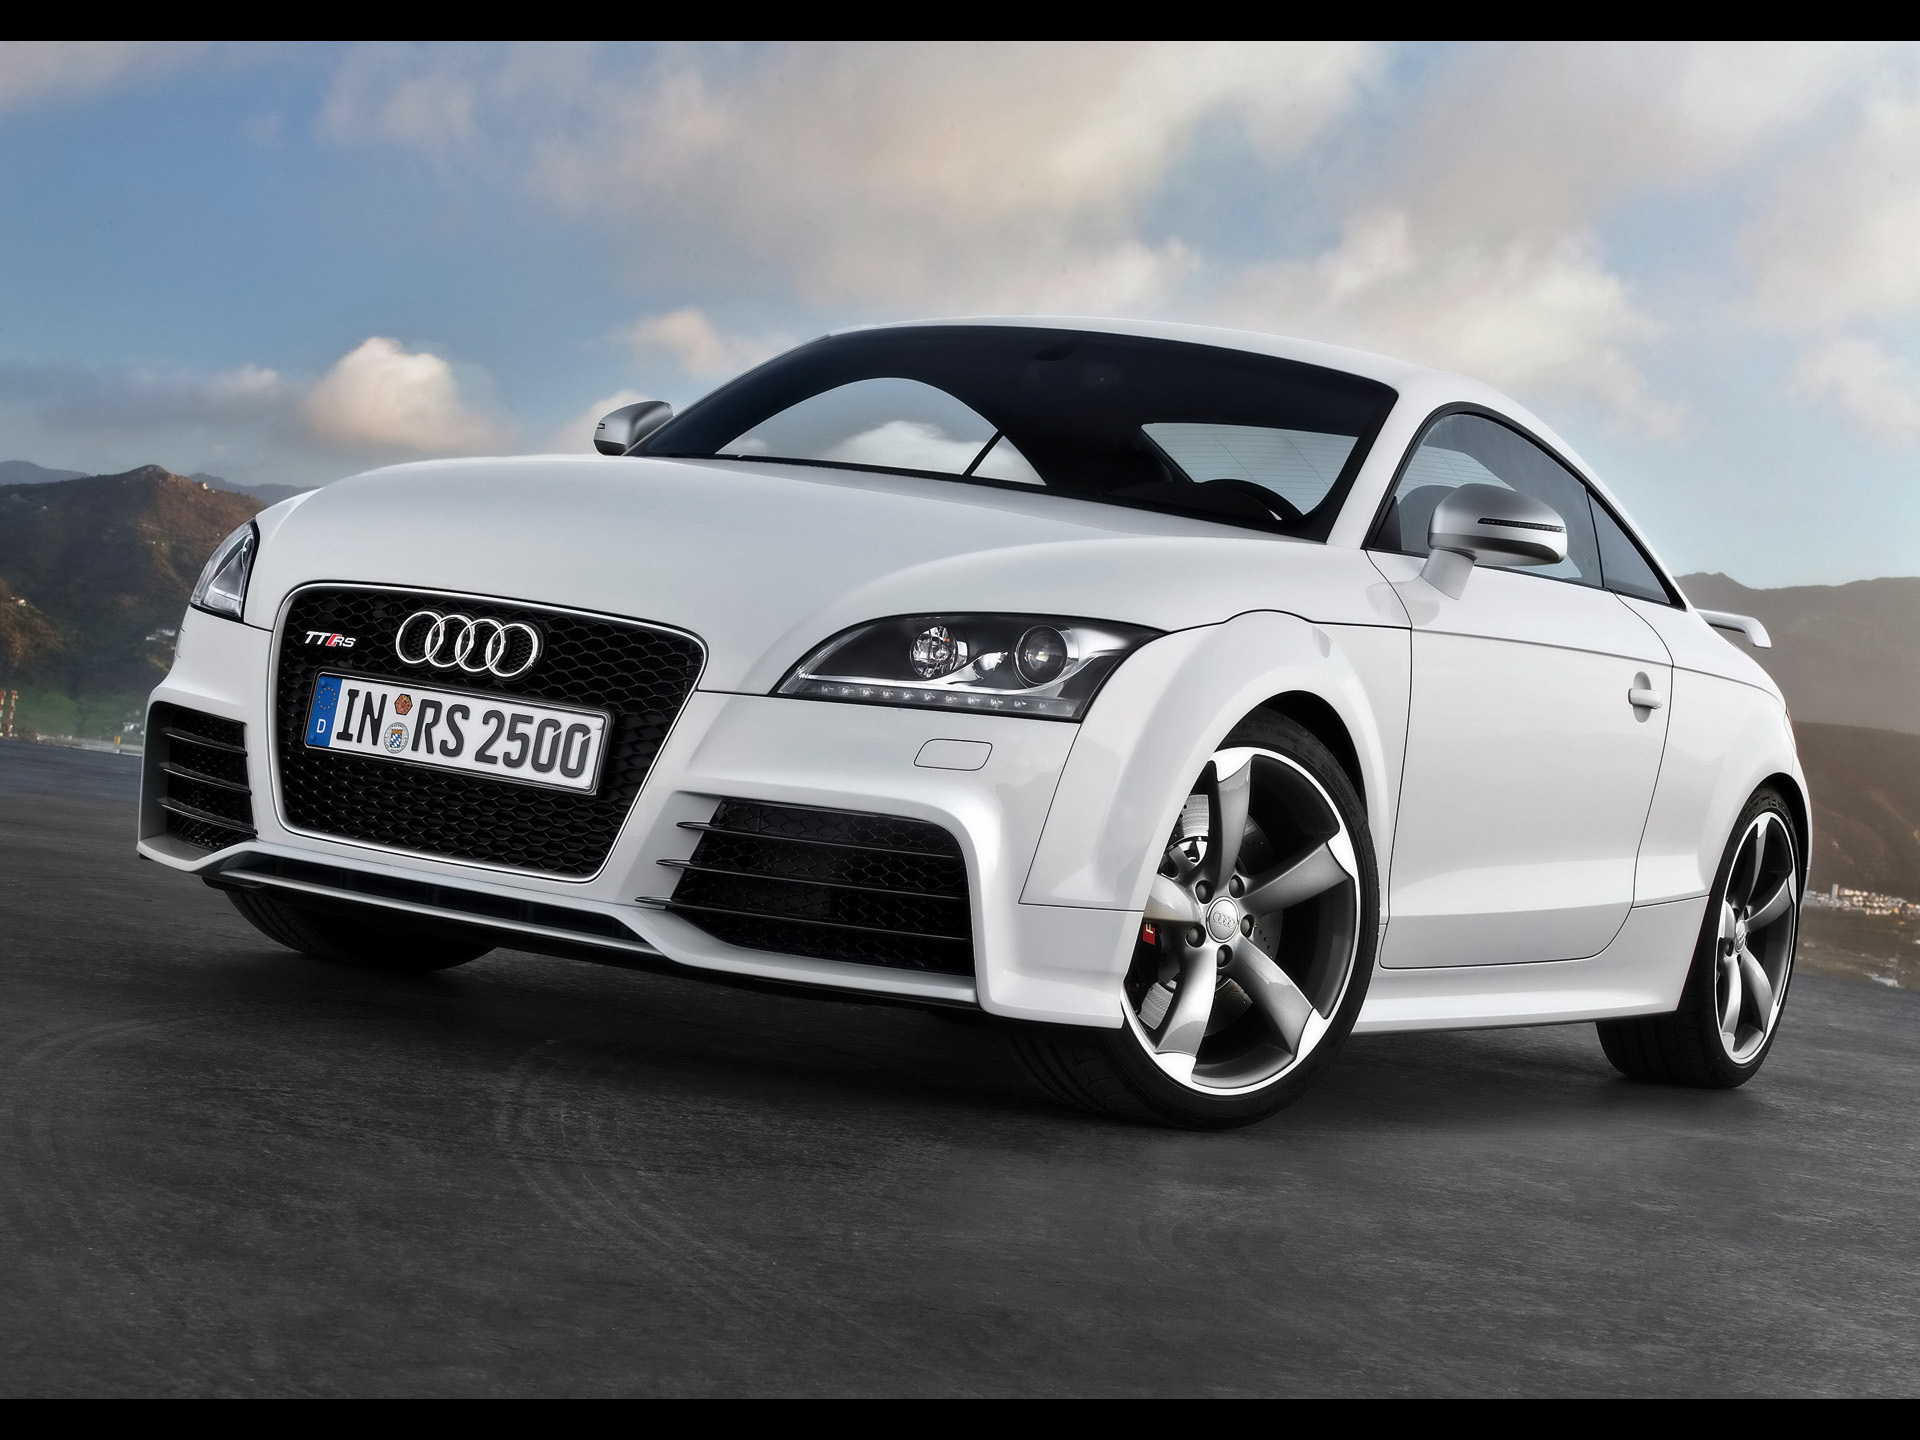 Audi TT Wallpaper for PC | Full HD Pictures